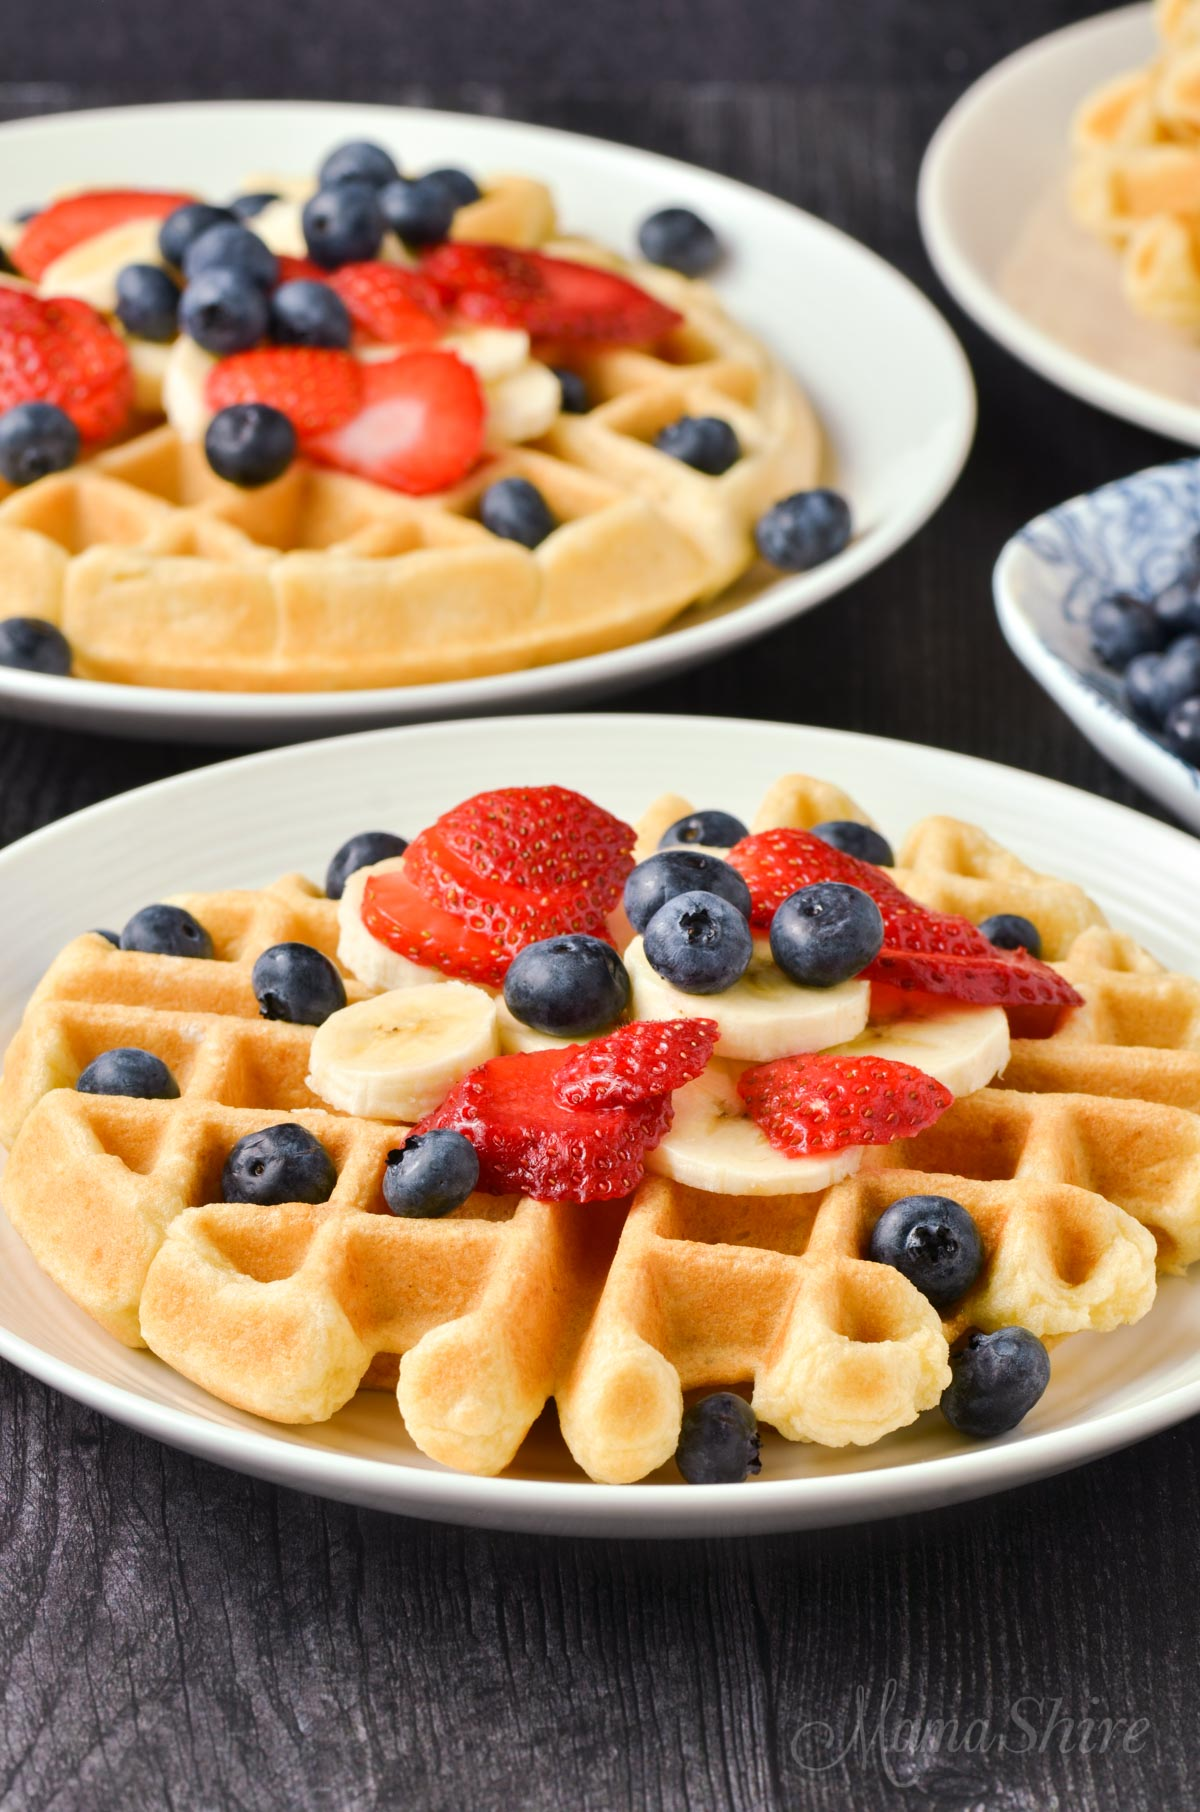 Waffles made gluten-free and dairy-free and covered with fruits.